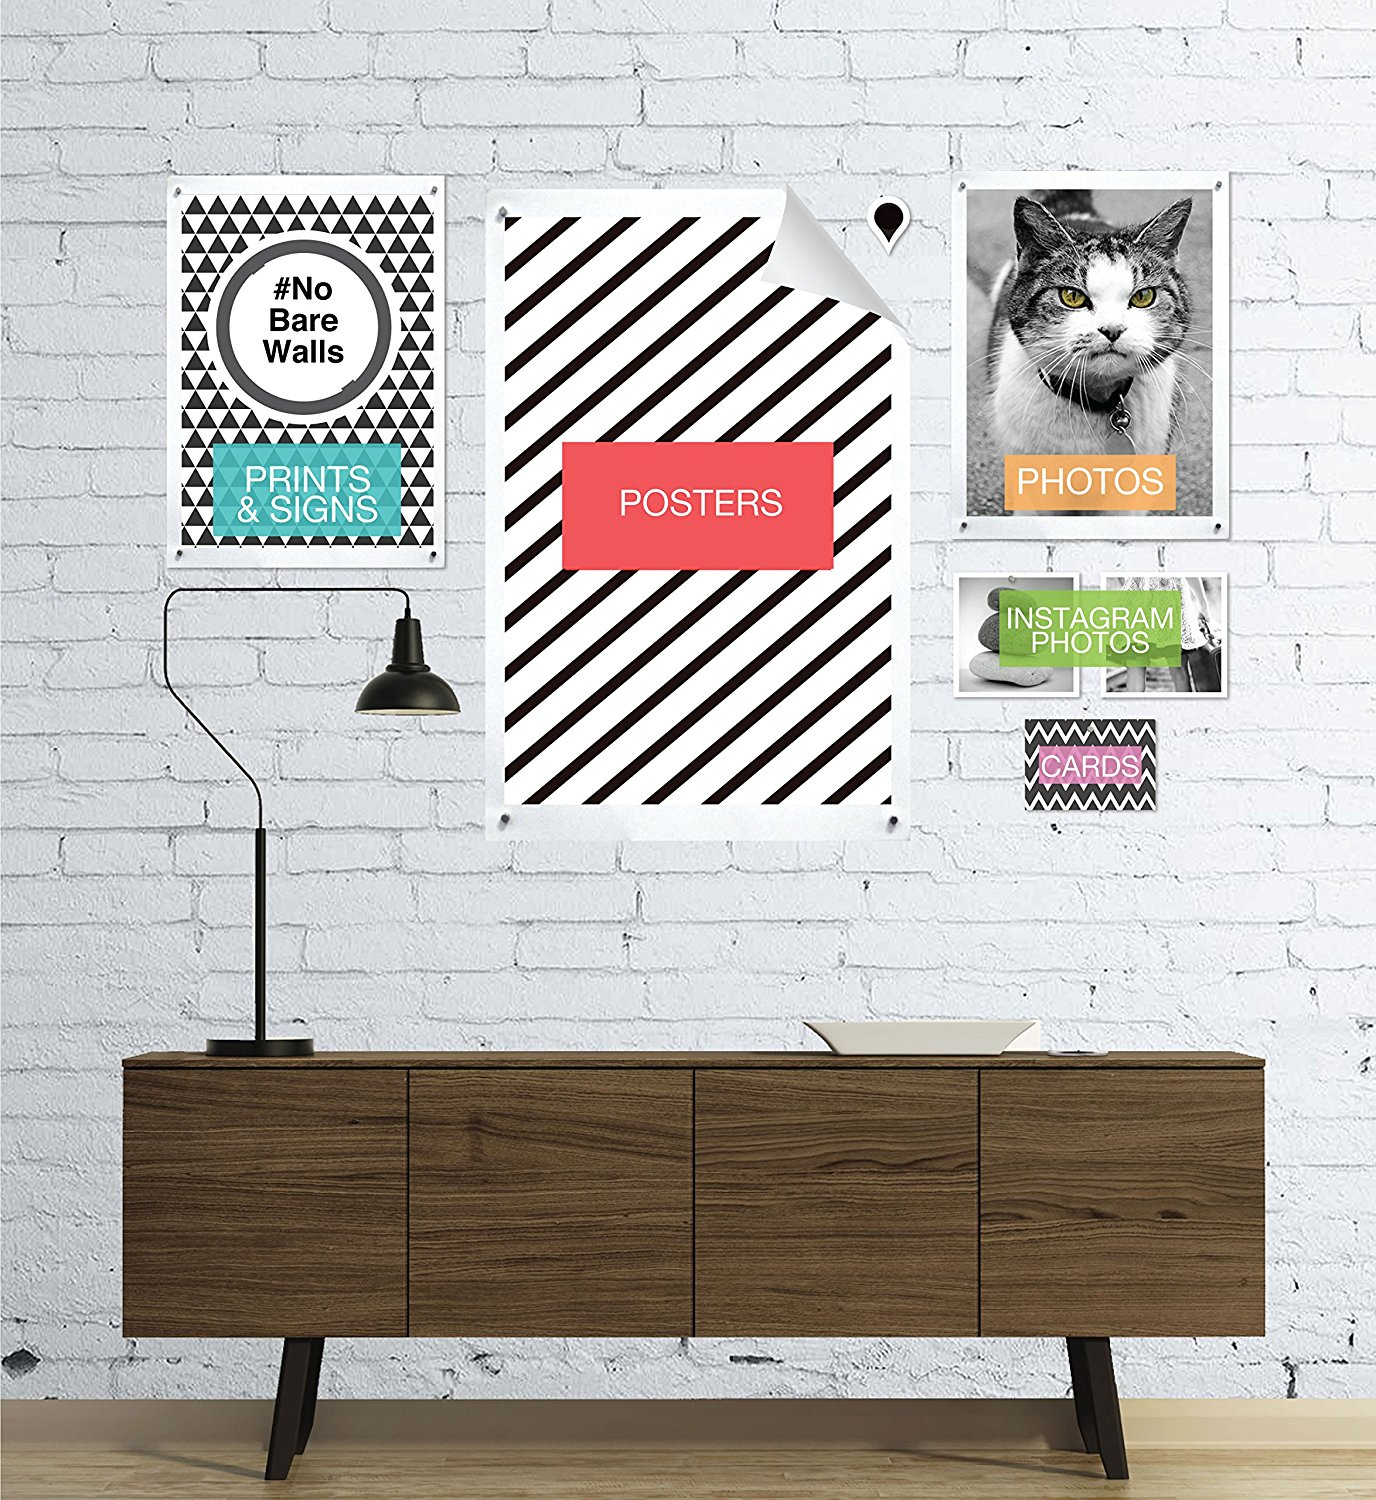 Goodhangups Hang Any Poster Without Damaging Your Walls